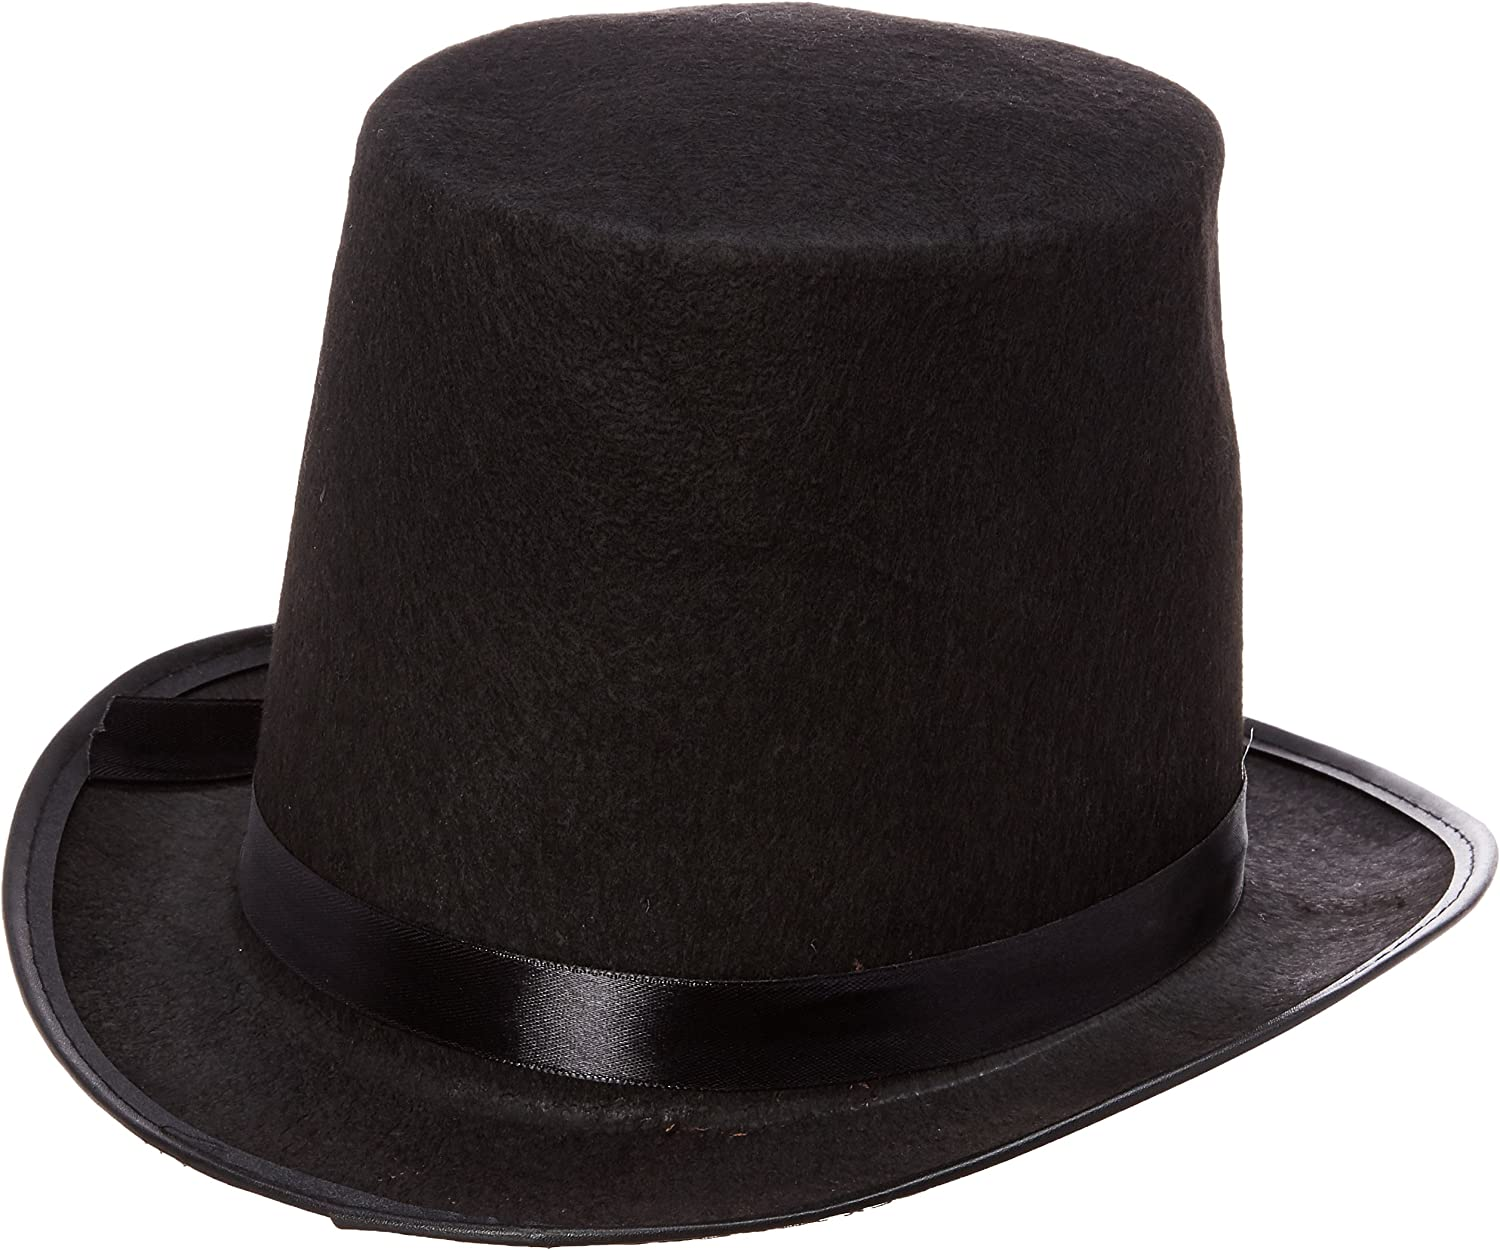 Black Top Hat Deluxe Greatest Showman Fancy Dress Accessory Adults